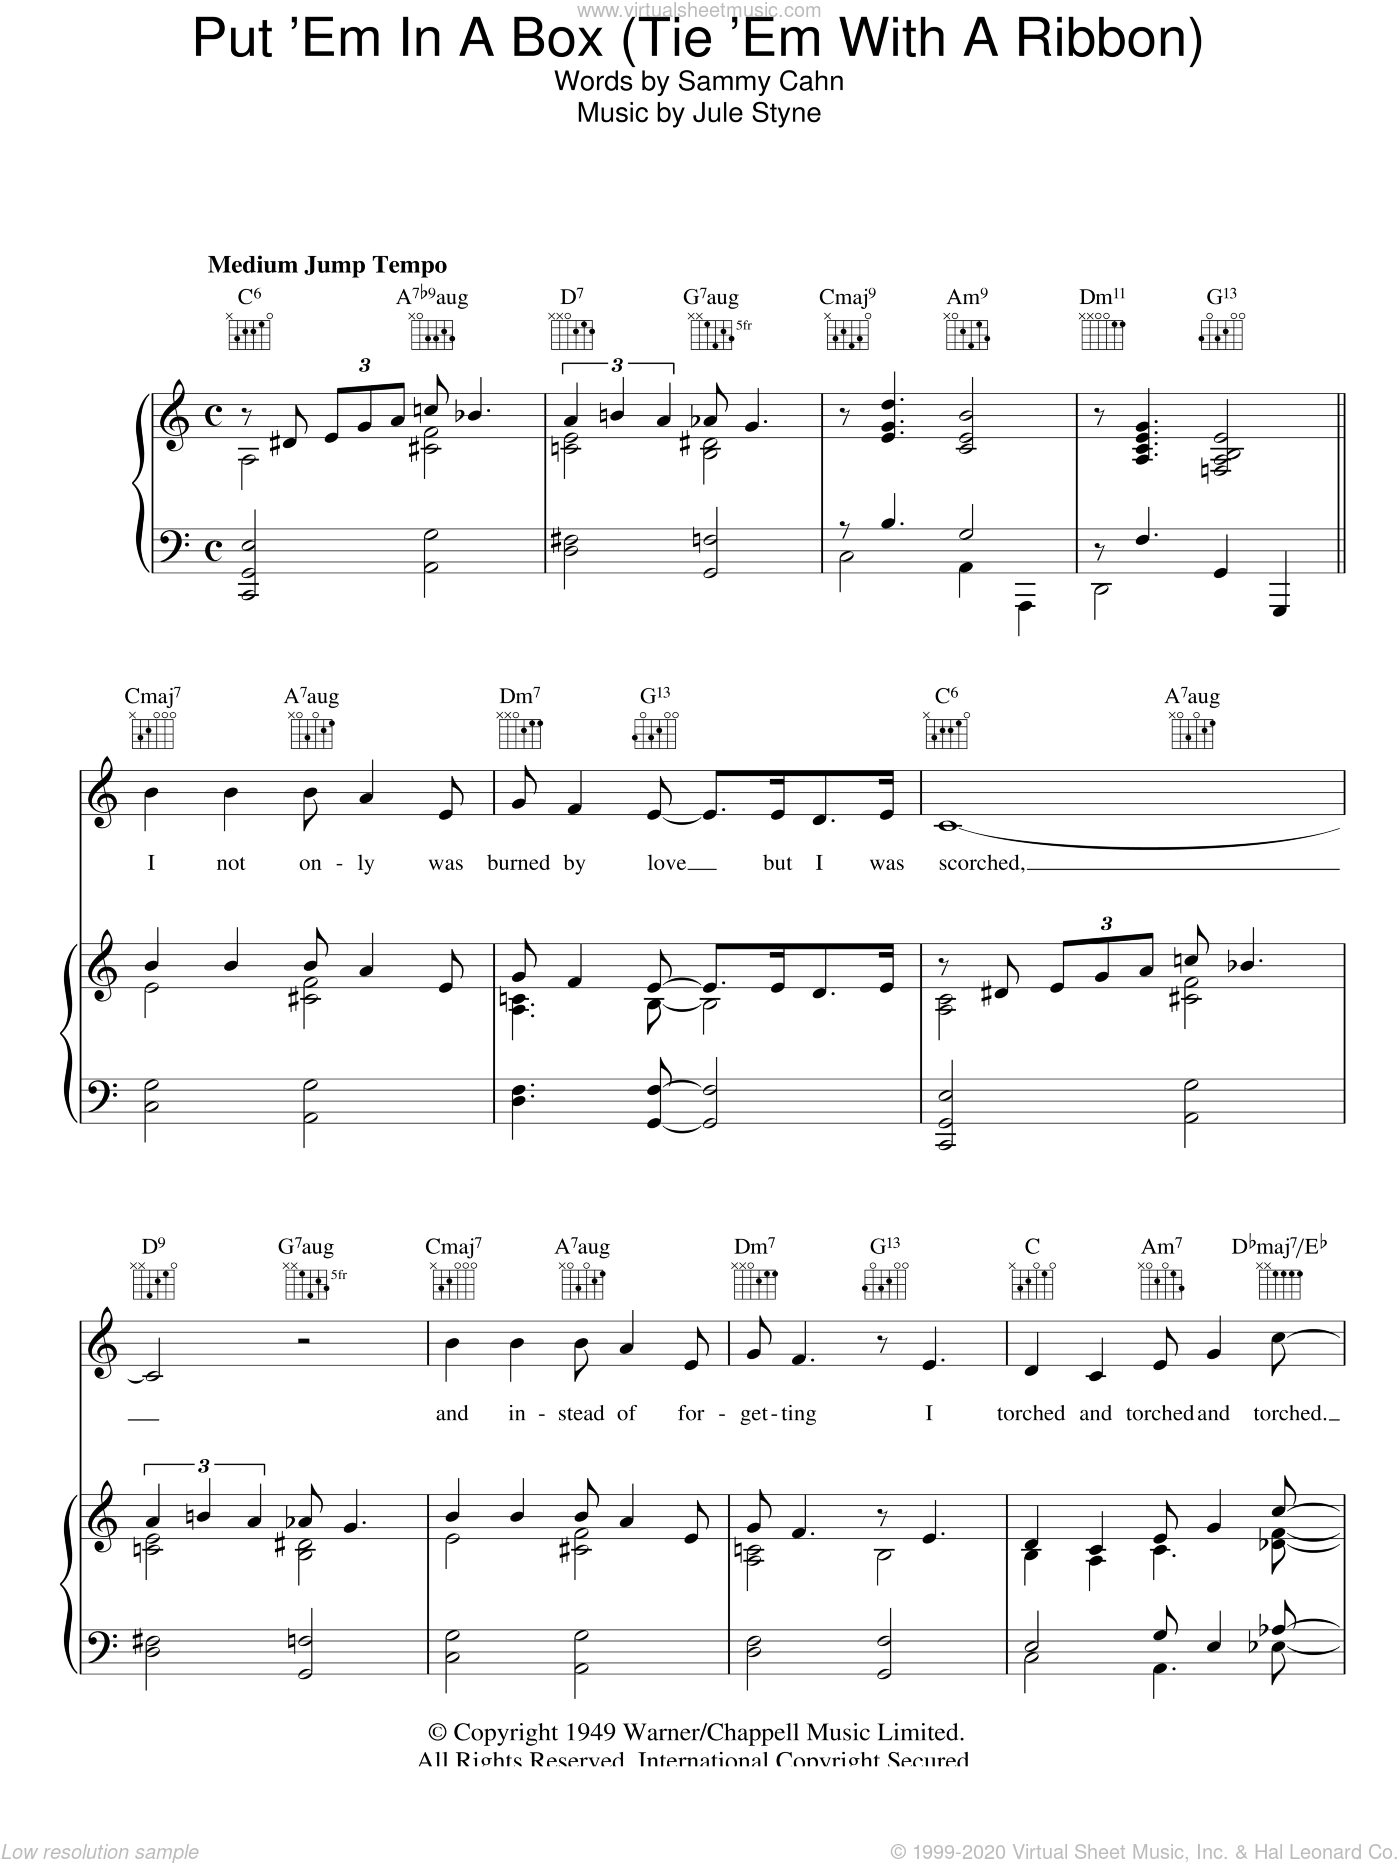 Put 'Em In A Box (Tie 'Em With A Ribbon) sheet music for voice, piano or guitar by Doris Day, Jule Styne and Sammy Cahn, intermediate skill level